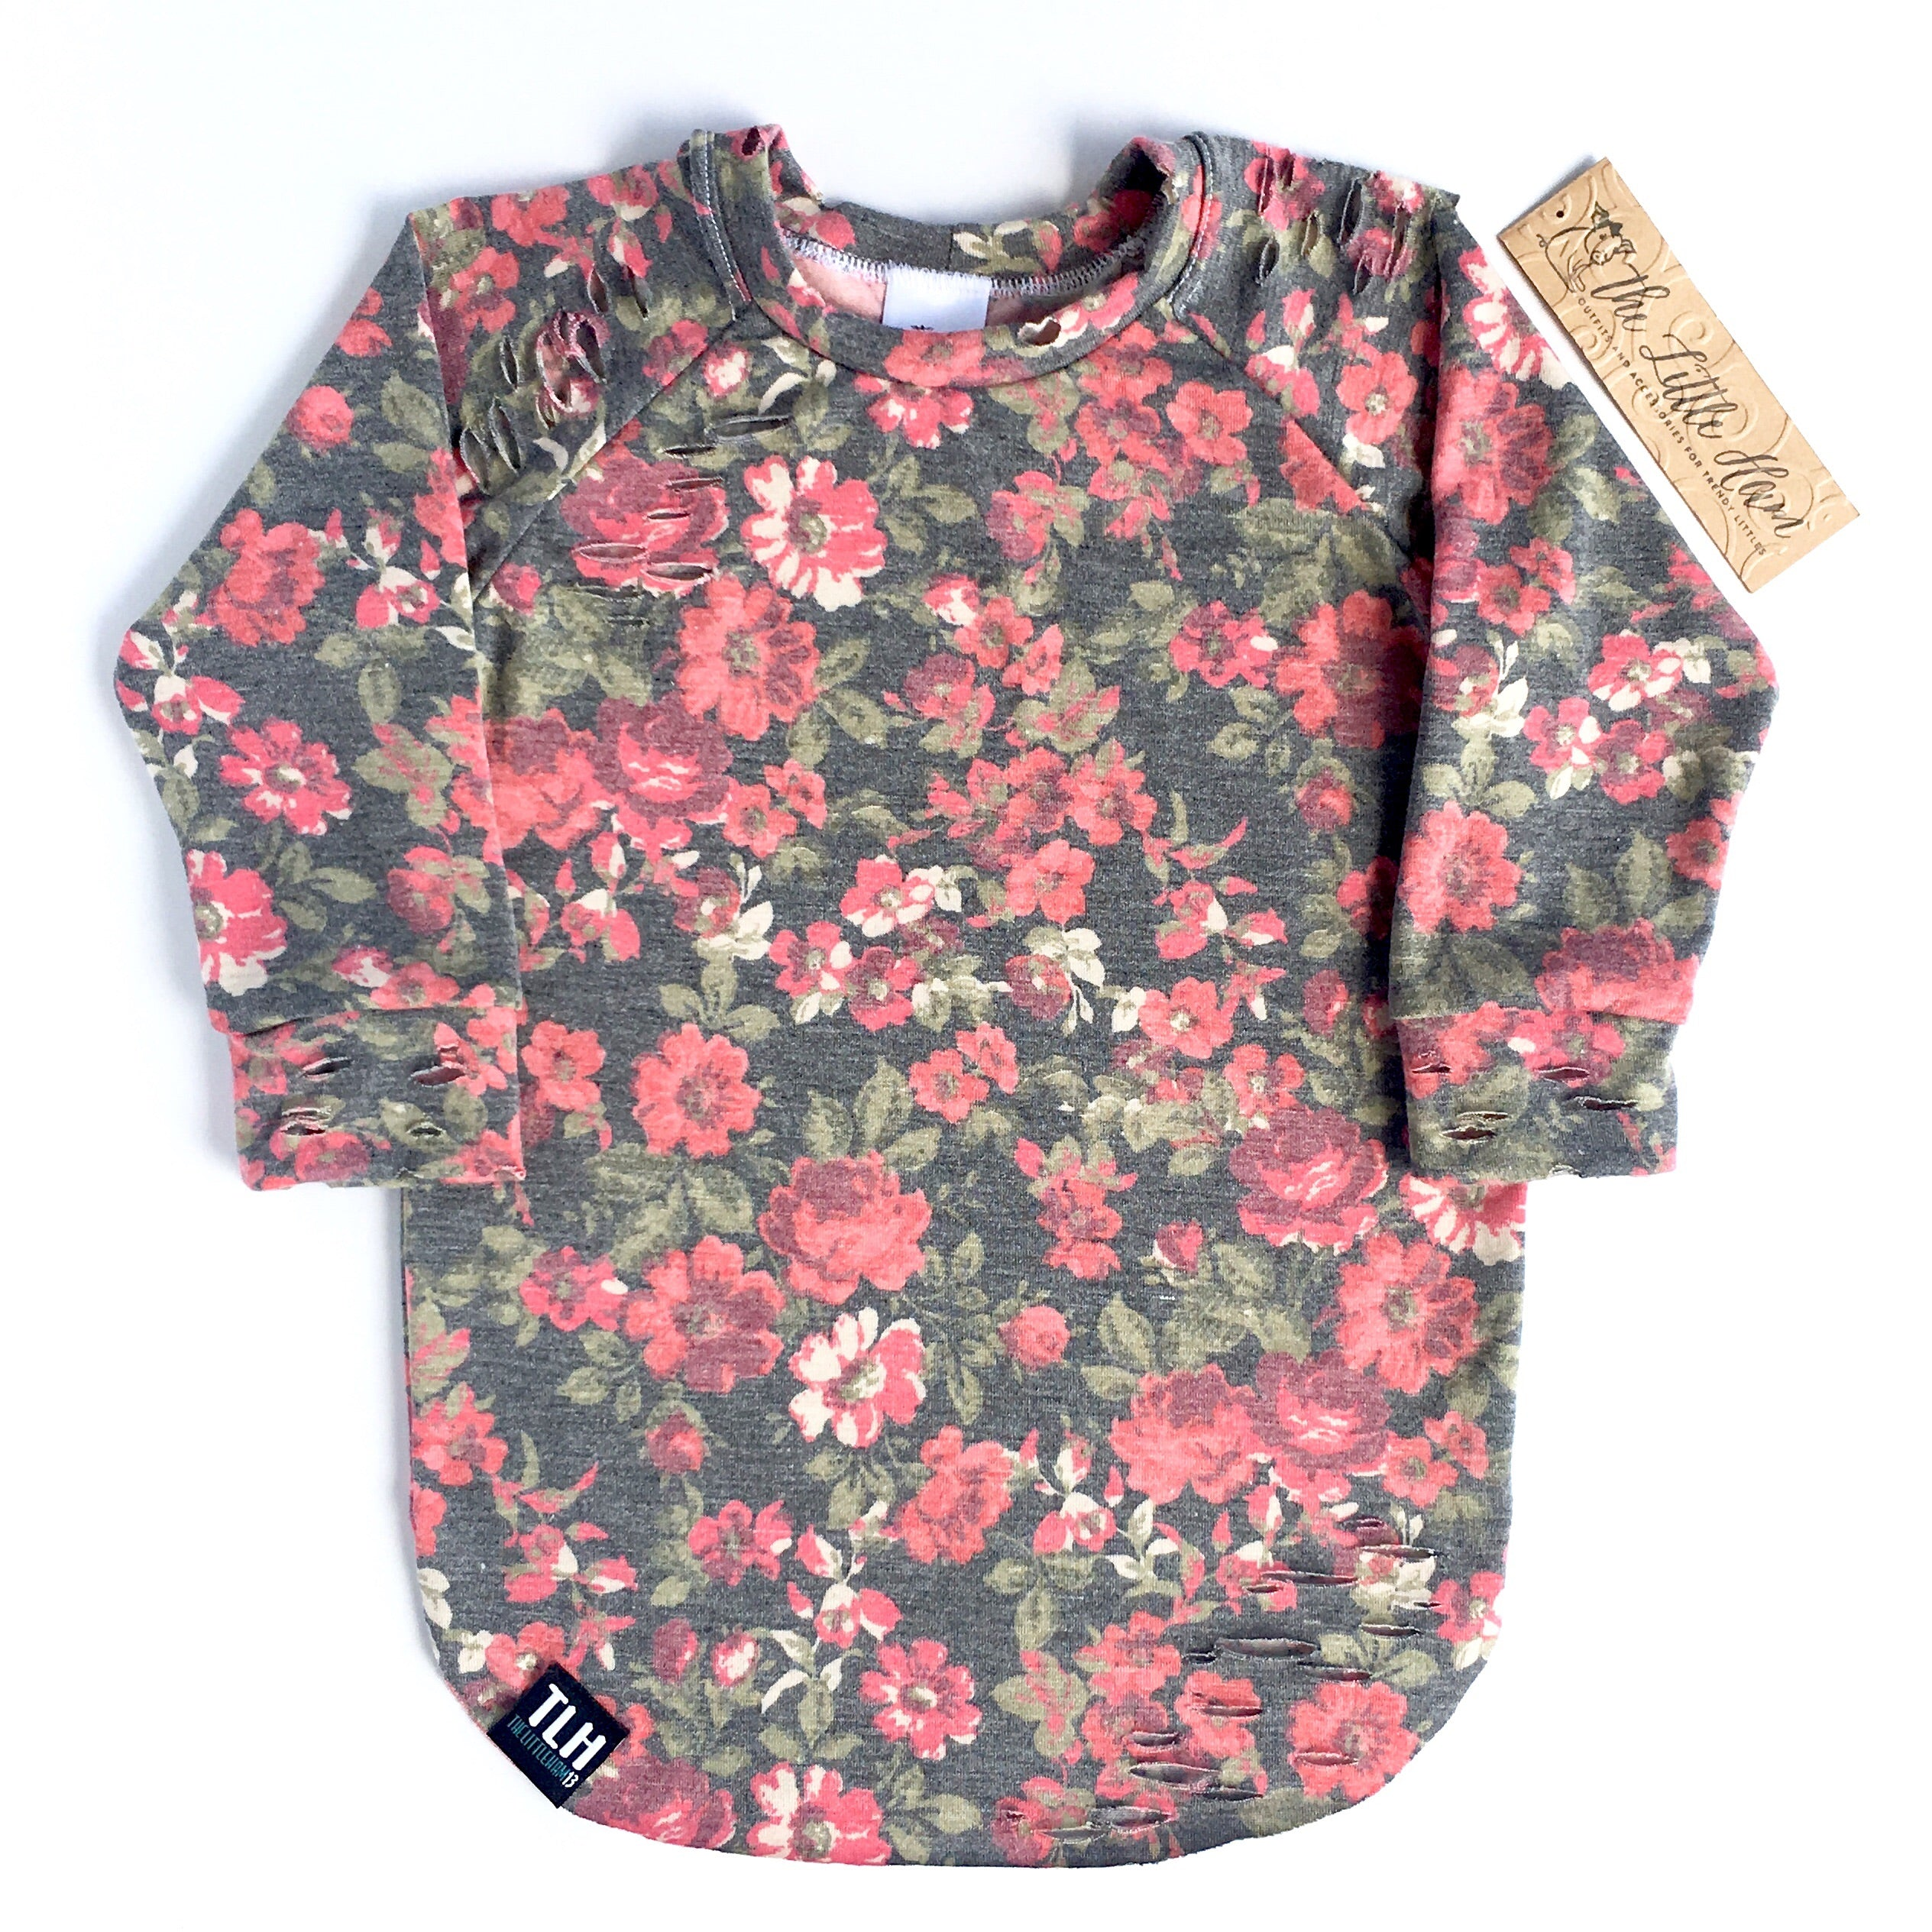 Tattered Floral Tee/Raglan